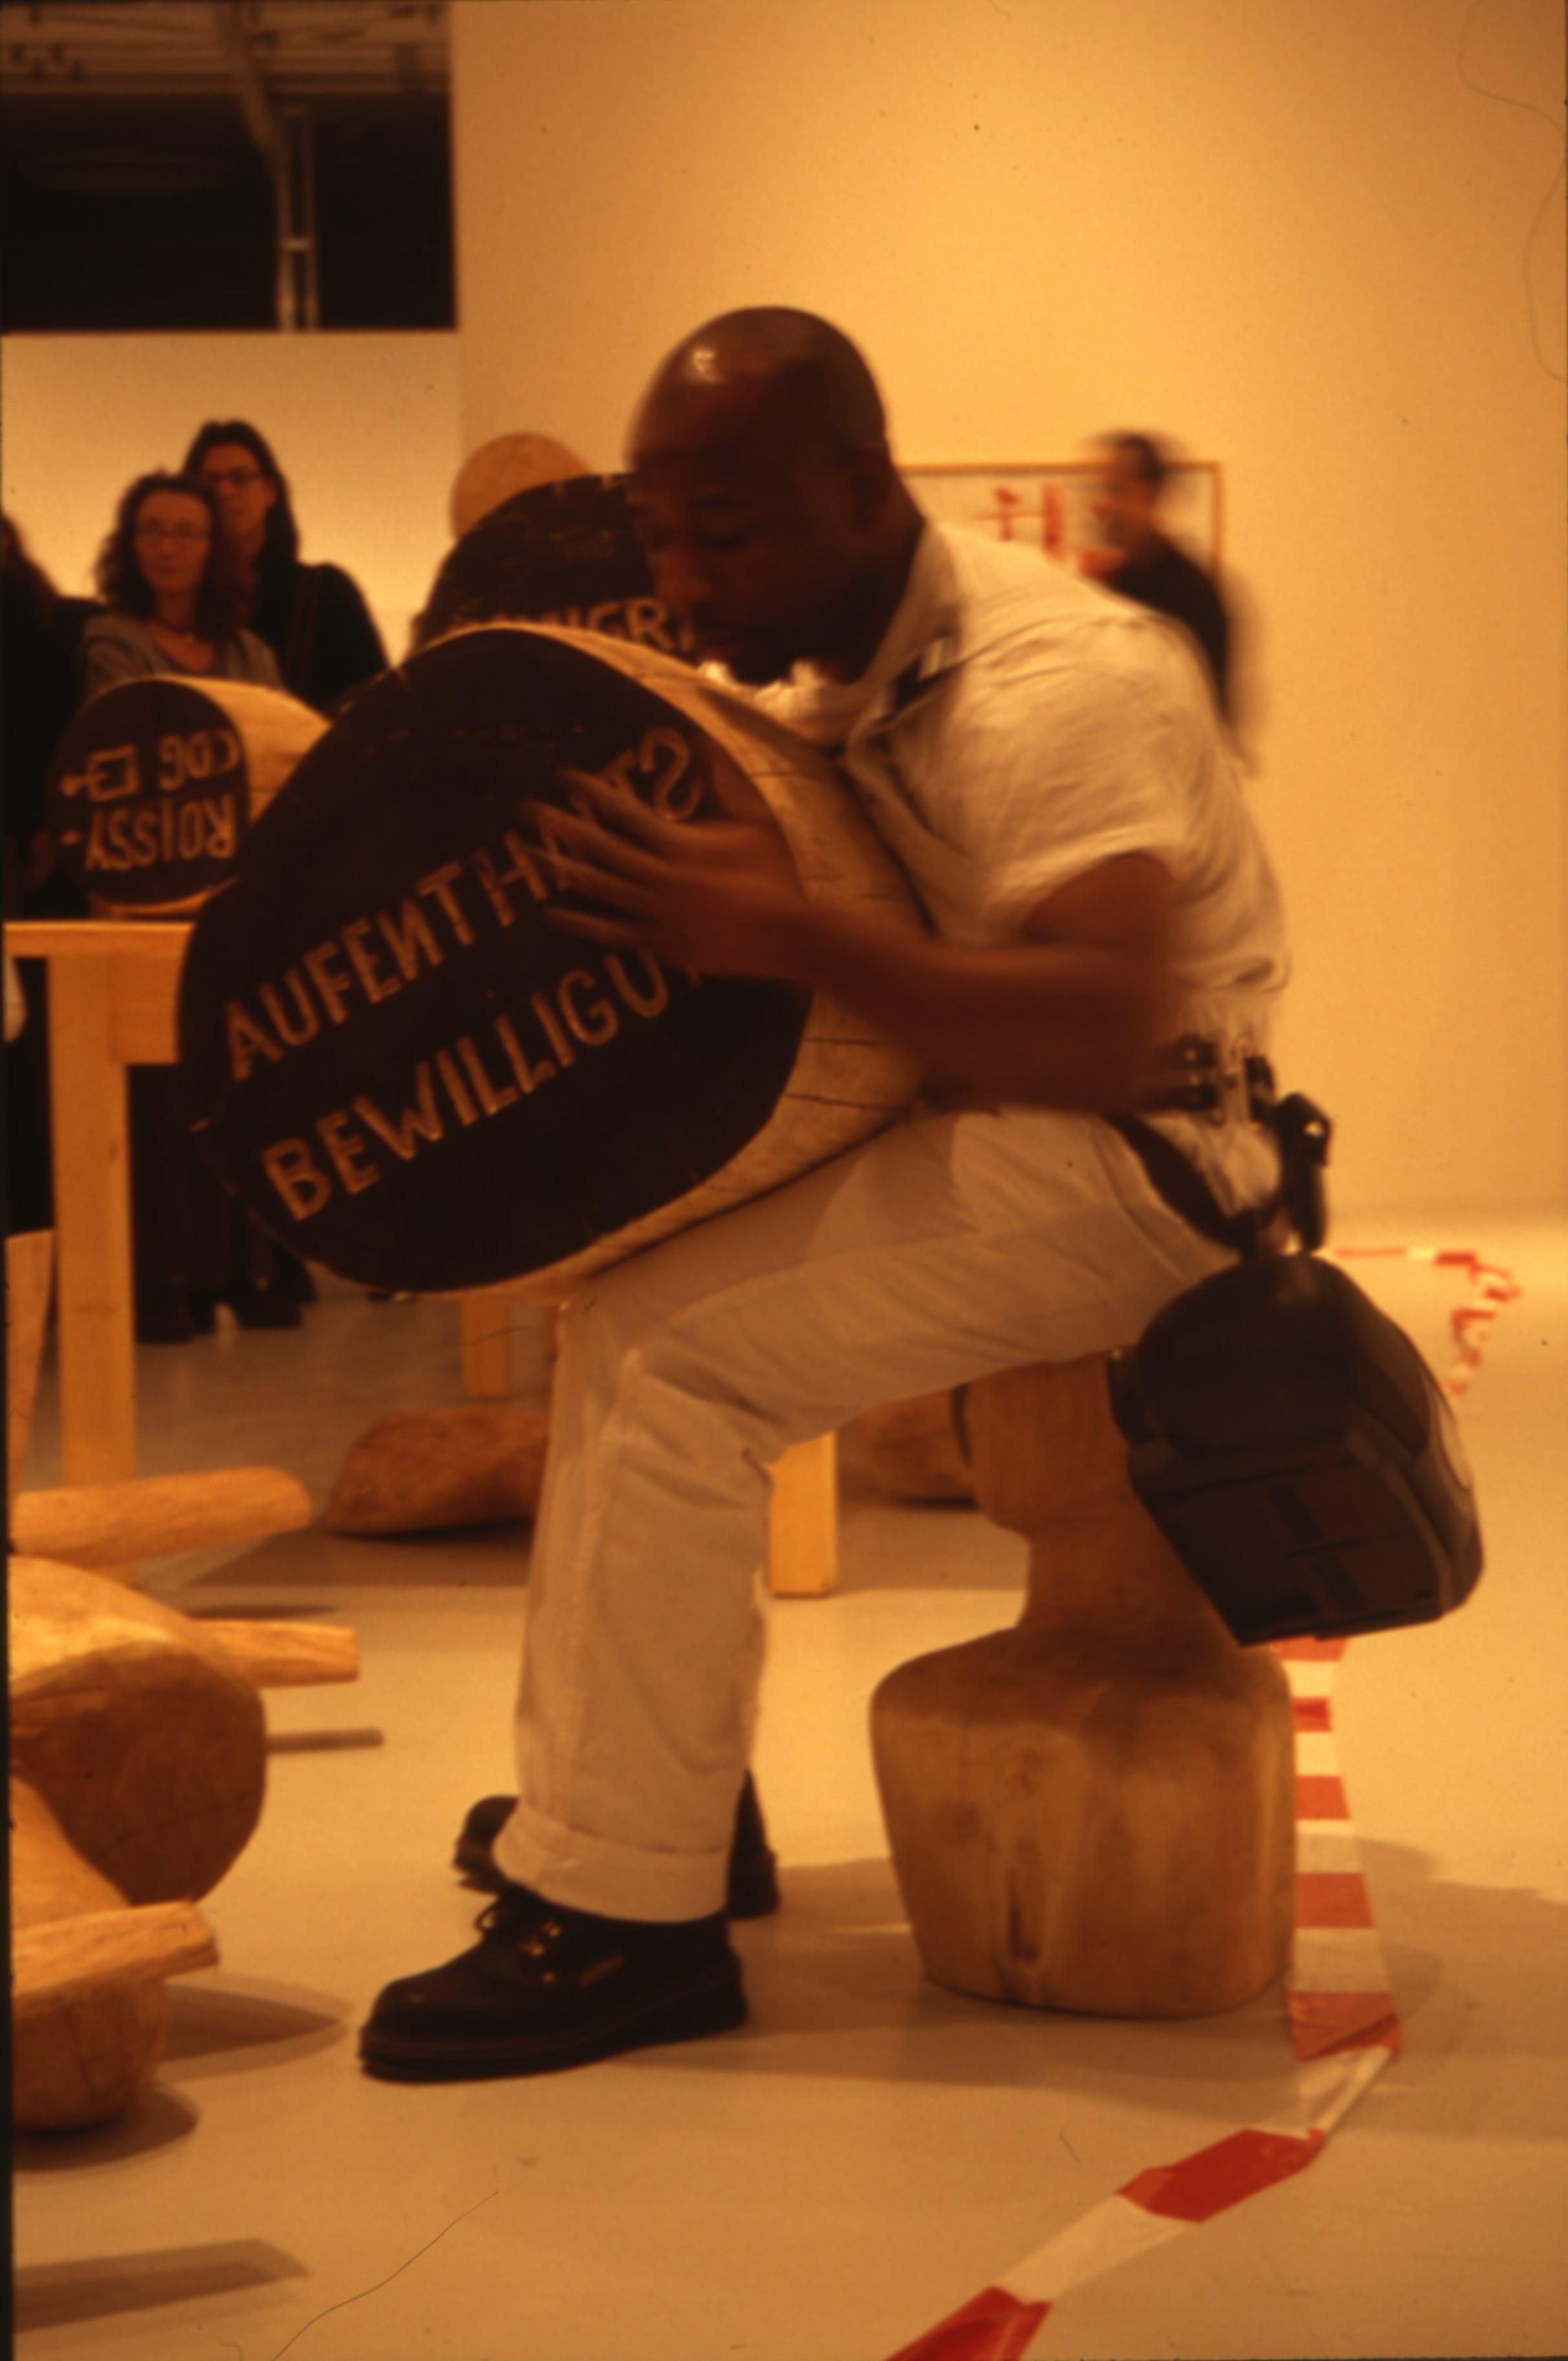 Barthélémy Toguo performing The New World Climax, 2011, courtesy of the artist